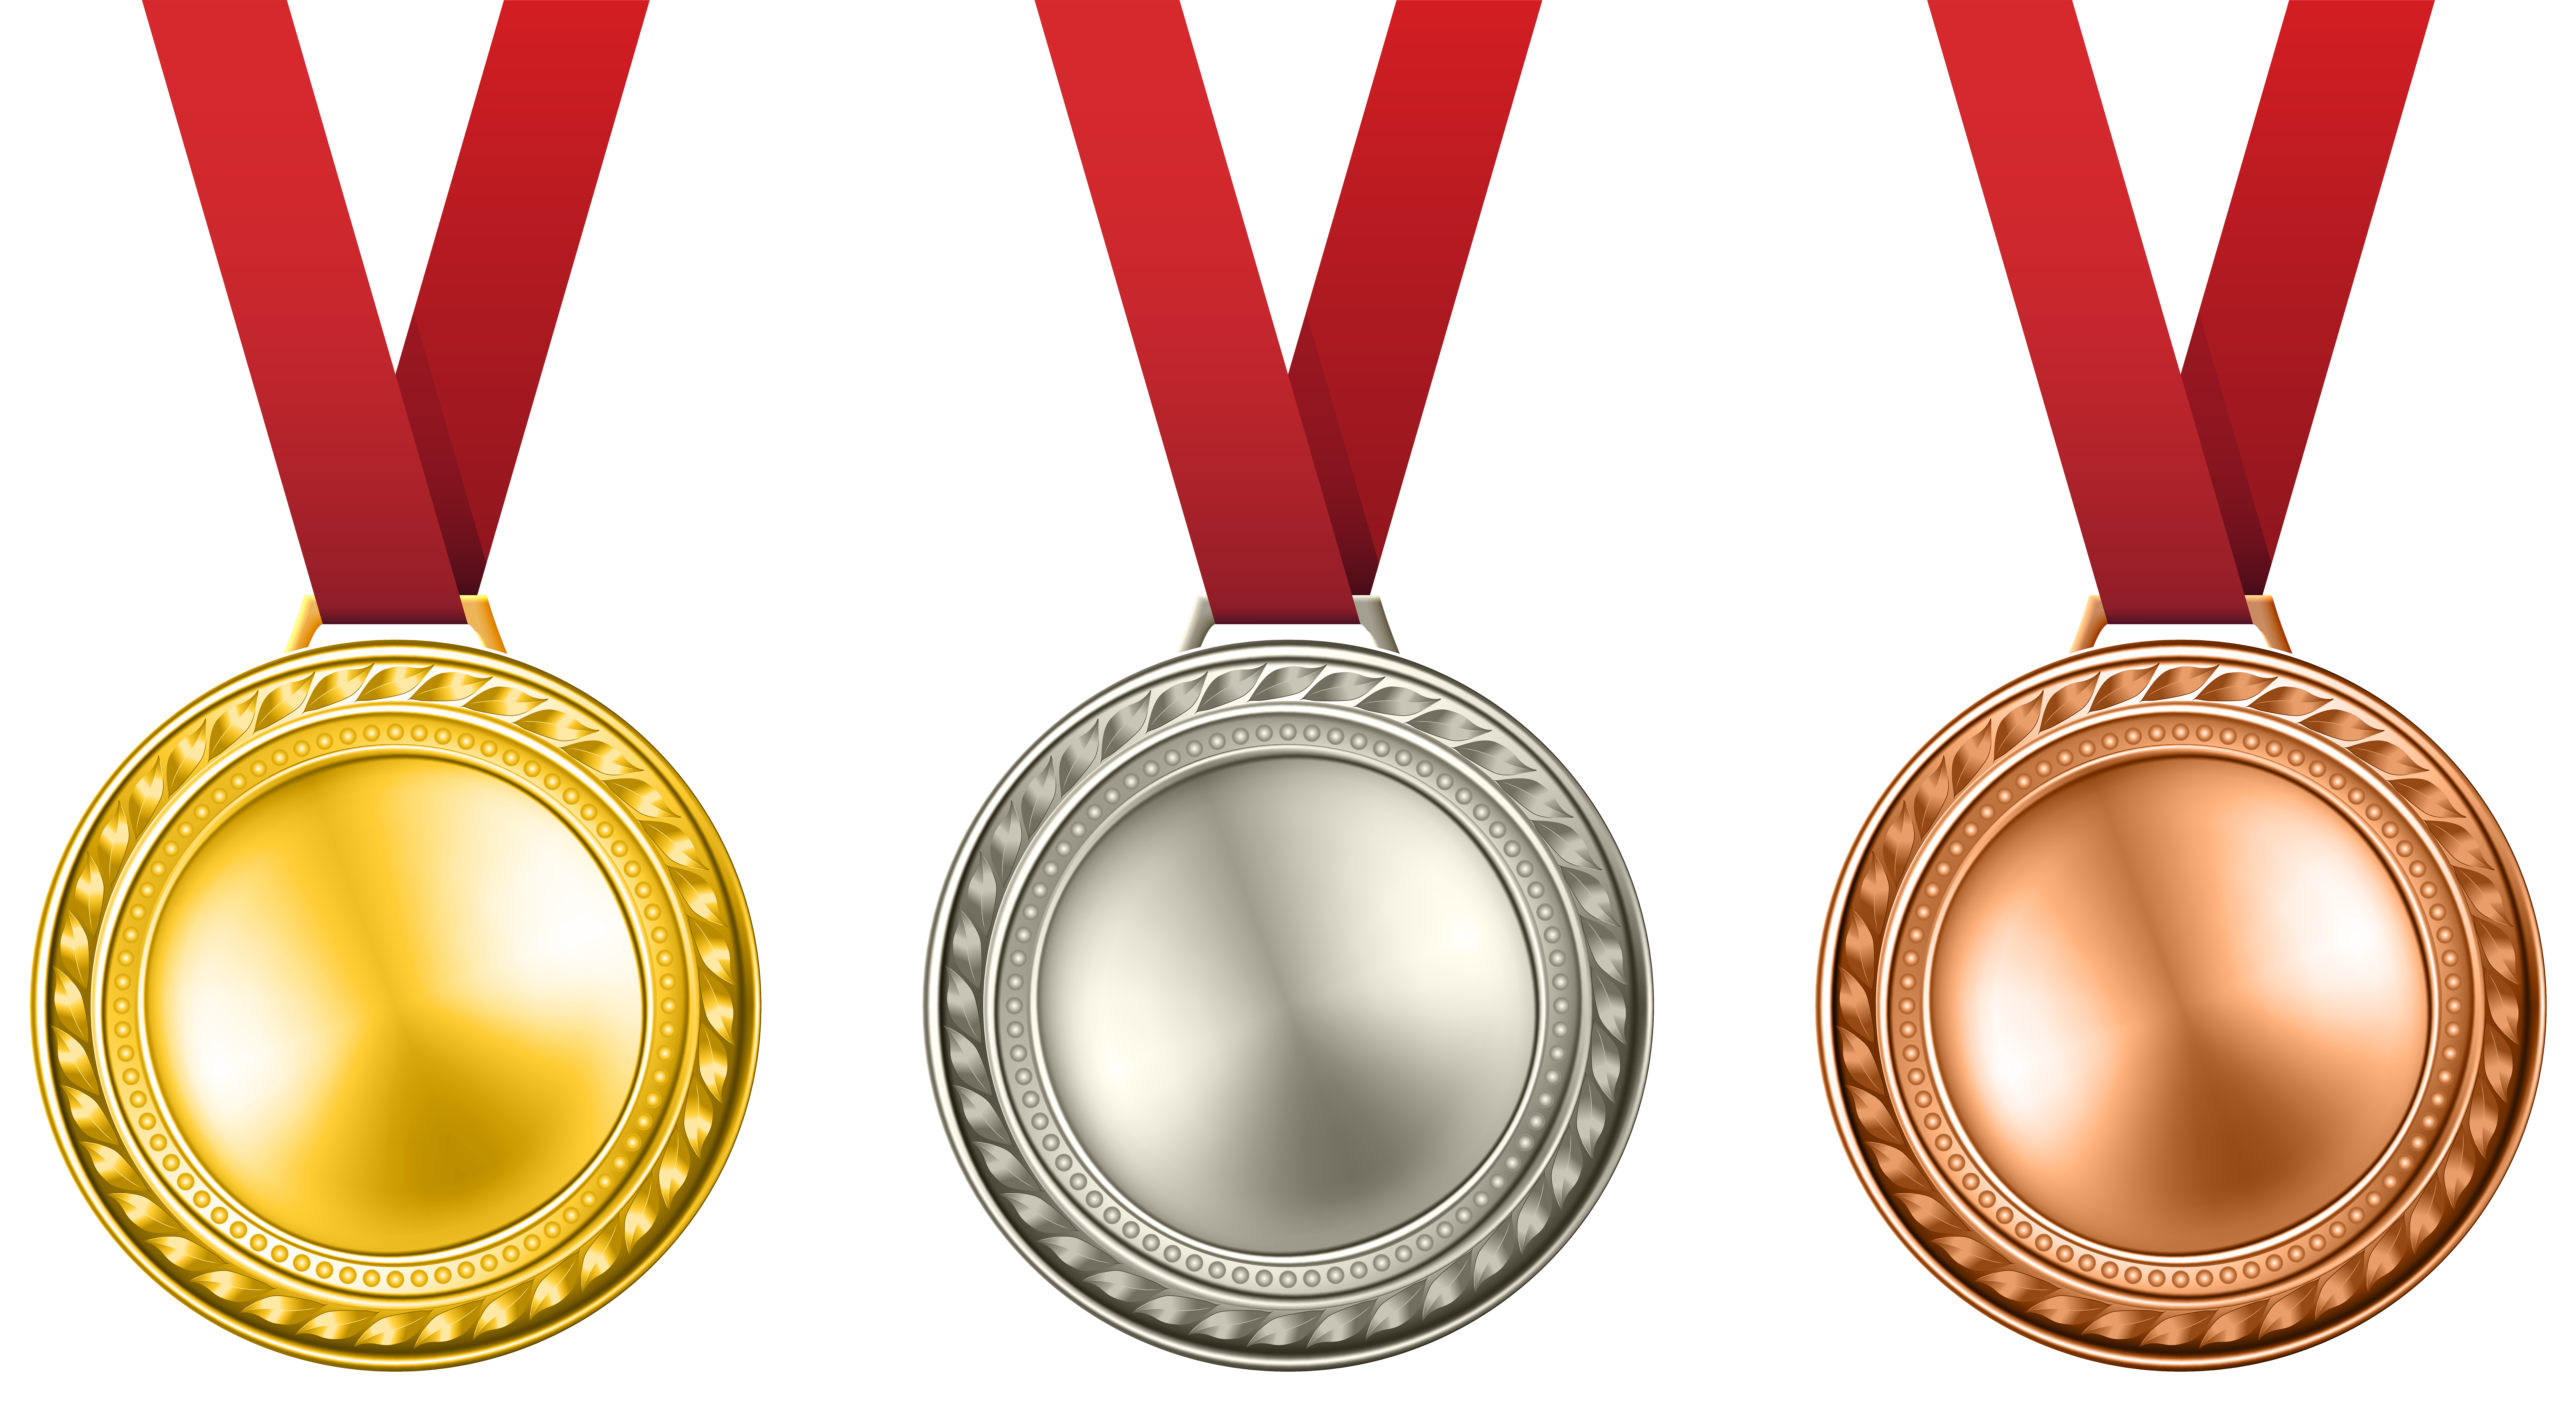 Medals Set Transparent Png Clip Art Image Gallery Yopriceville High Quality Images And Transparent Png Free Clipart Medals Art Images Clip Art